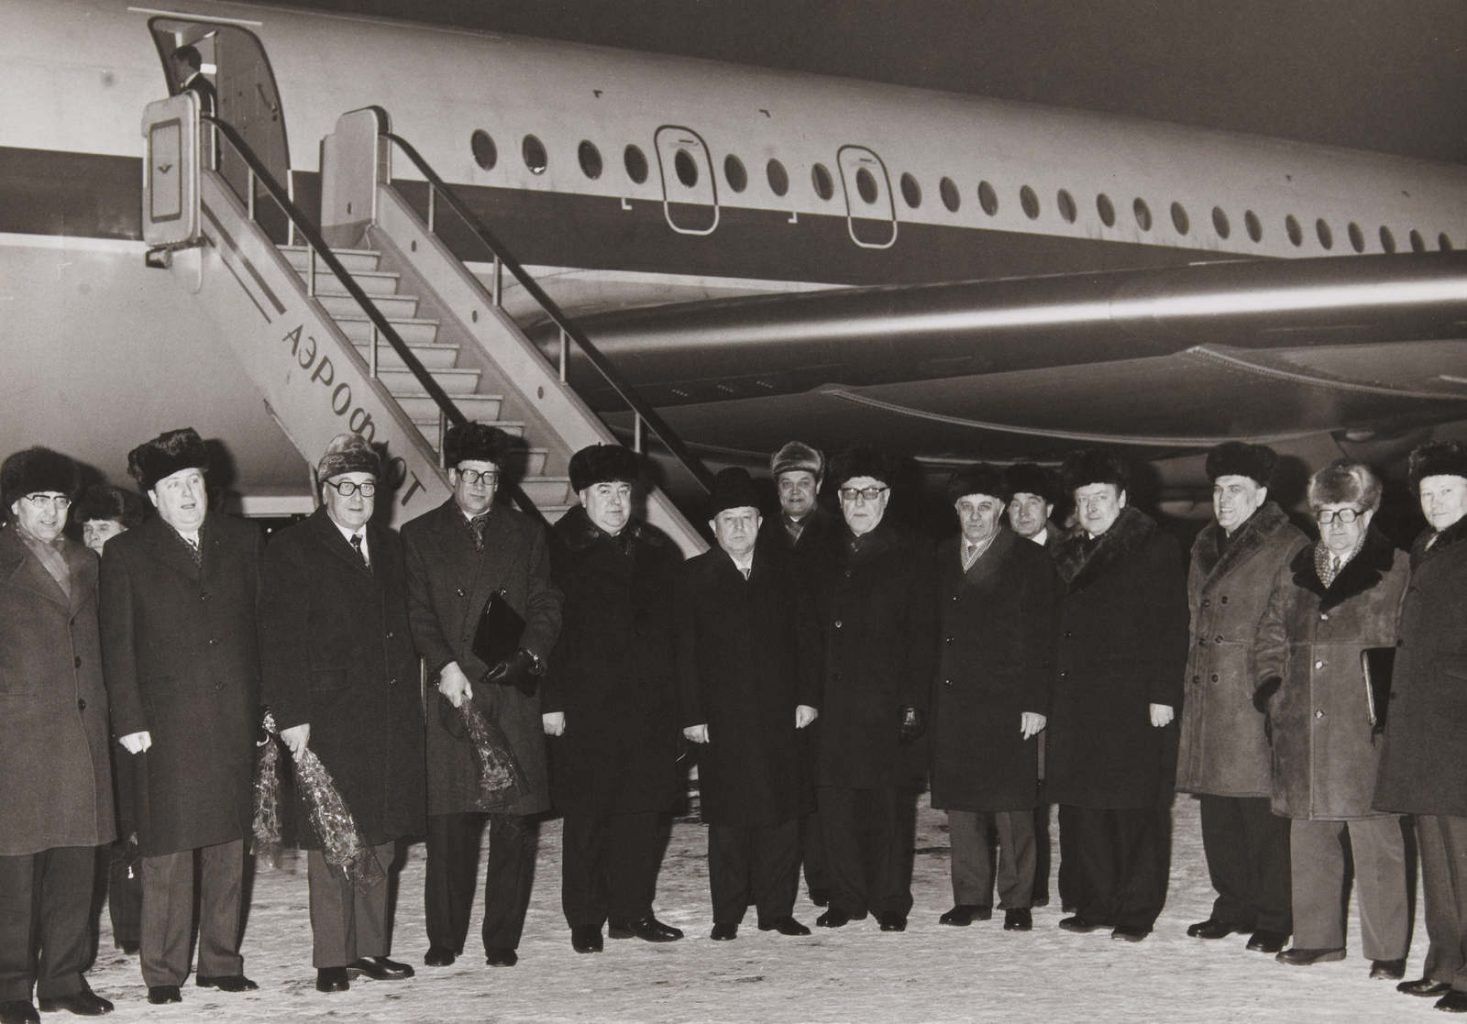 "Unique photograph of the visit of the leaders of STASI of the GDR (General Erich MIELKE, General Markus WOLF, etc.) to Moscow (USSR) during the winter of 1980. None of the Western secret services had succeeded in photographing Markus WOLF (known as ""the man without a face""), head of HV A (STASI's external intelligence) during the Cold War period, which makes this photo ""unique"". The photo was taken at the foot of an Aeroflot plane and shows 3 successive KGB presidents (5th left: Vitaly FEDORCHUK (president in 1988), 8th left: Viktor CHEBRIKOV (president from 1982 to 1988), and far right: Vladimir KRYUCHKOV (president from 1988 to 1991)), in the presence of STASI Generals Markus WOLF (4th left) and Erich MIELKE (6th left)."